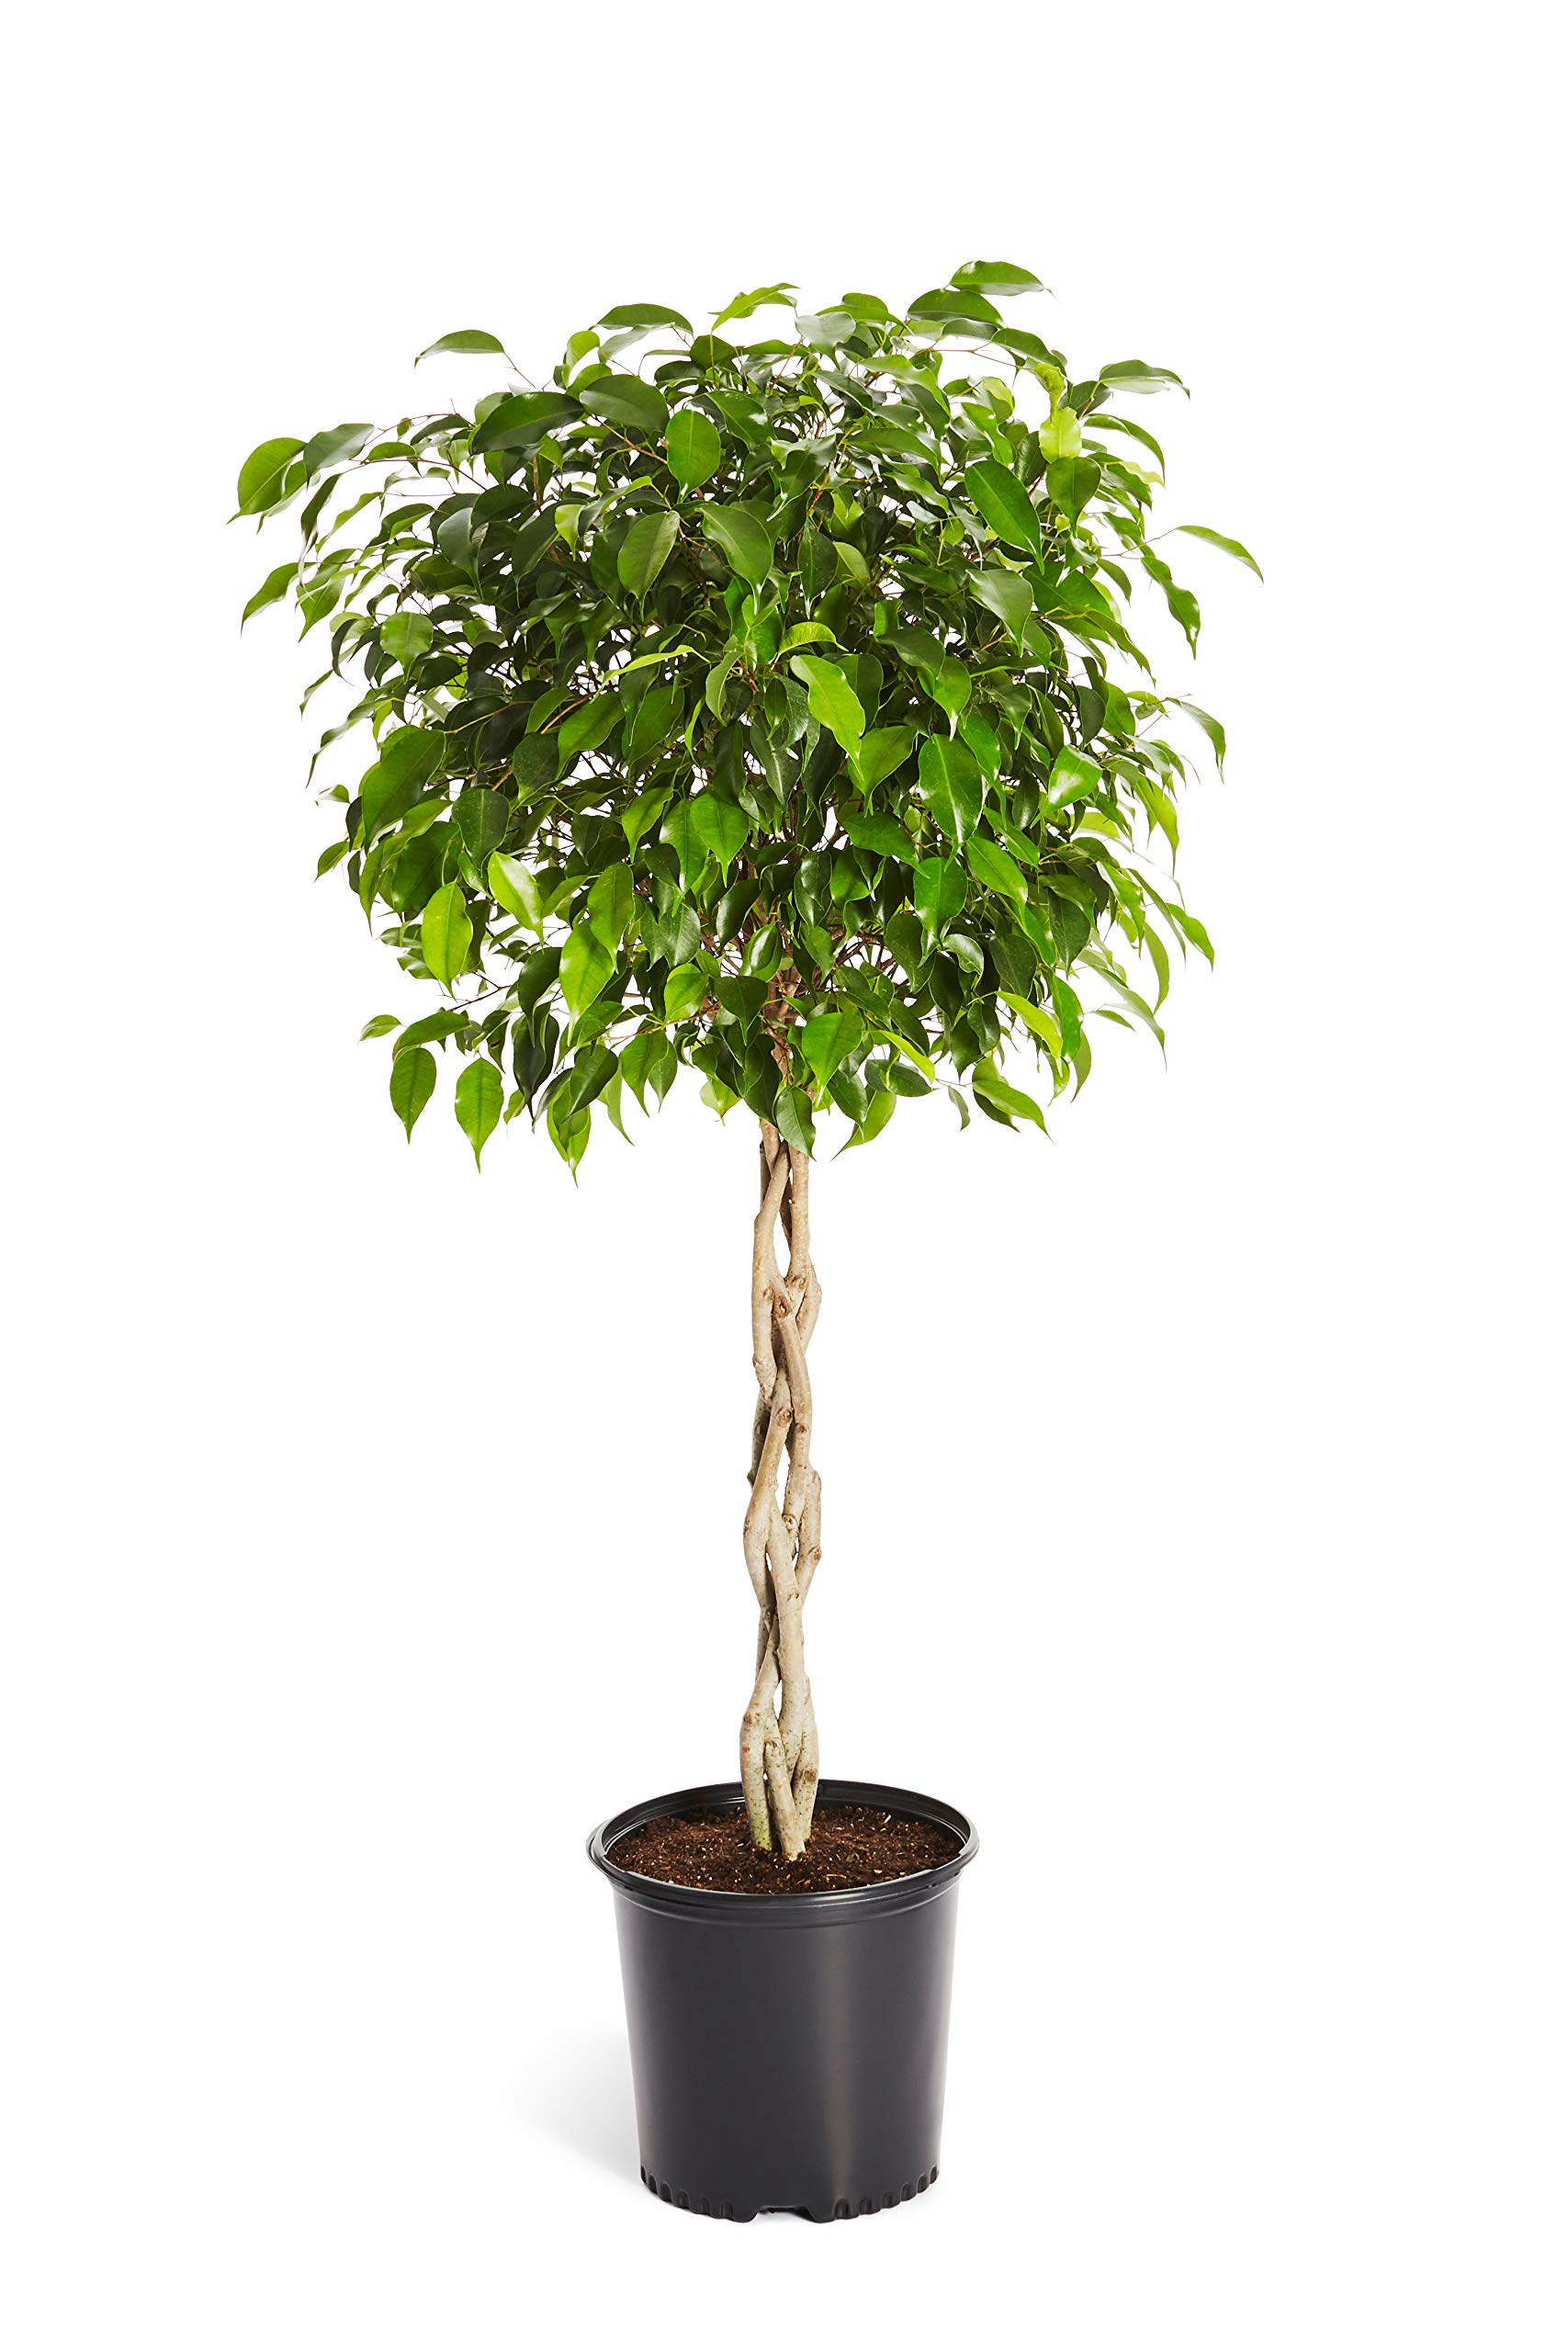 Benjamina Ficus Tree 3-4 ft. Tall - Unique Potted Tree, Perfect as a Live Patio Plants or Indoor Trees - Not Artificial Plants